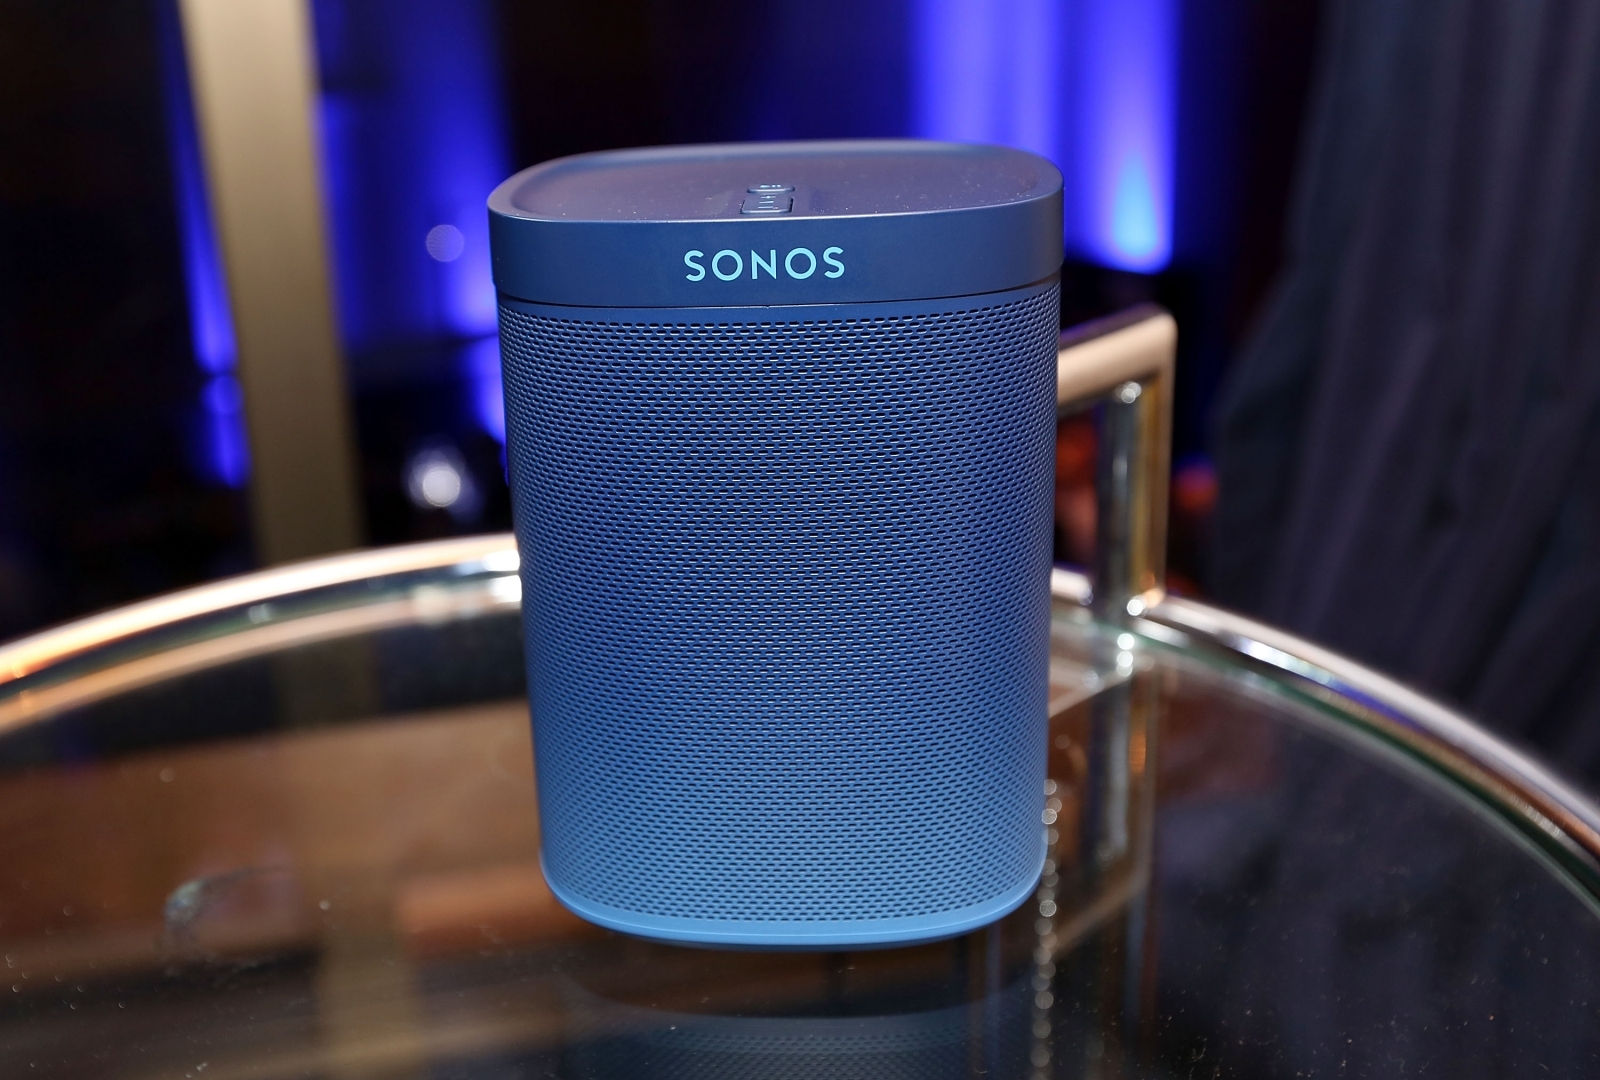 Some Sonos and Bose speakers are being hijacked to play ghostly sounds